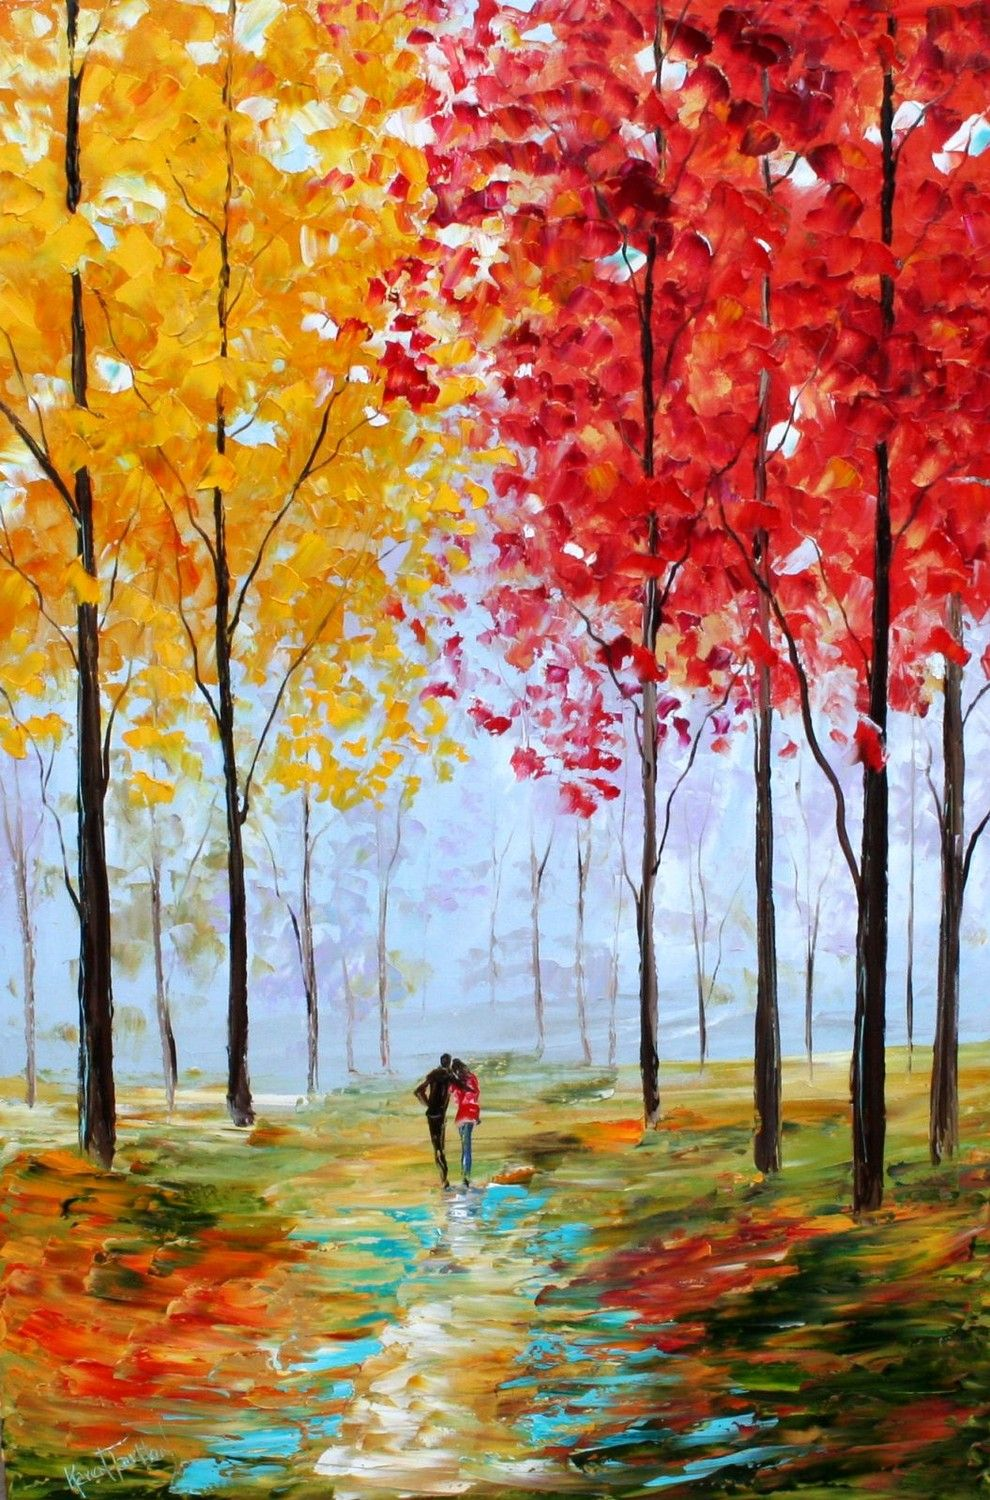 Karen tarlton original oil painting autumn romance landscape